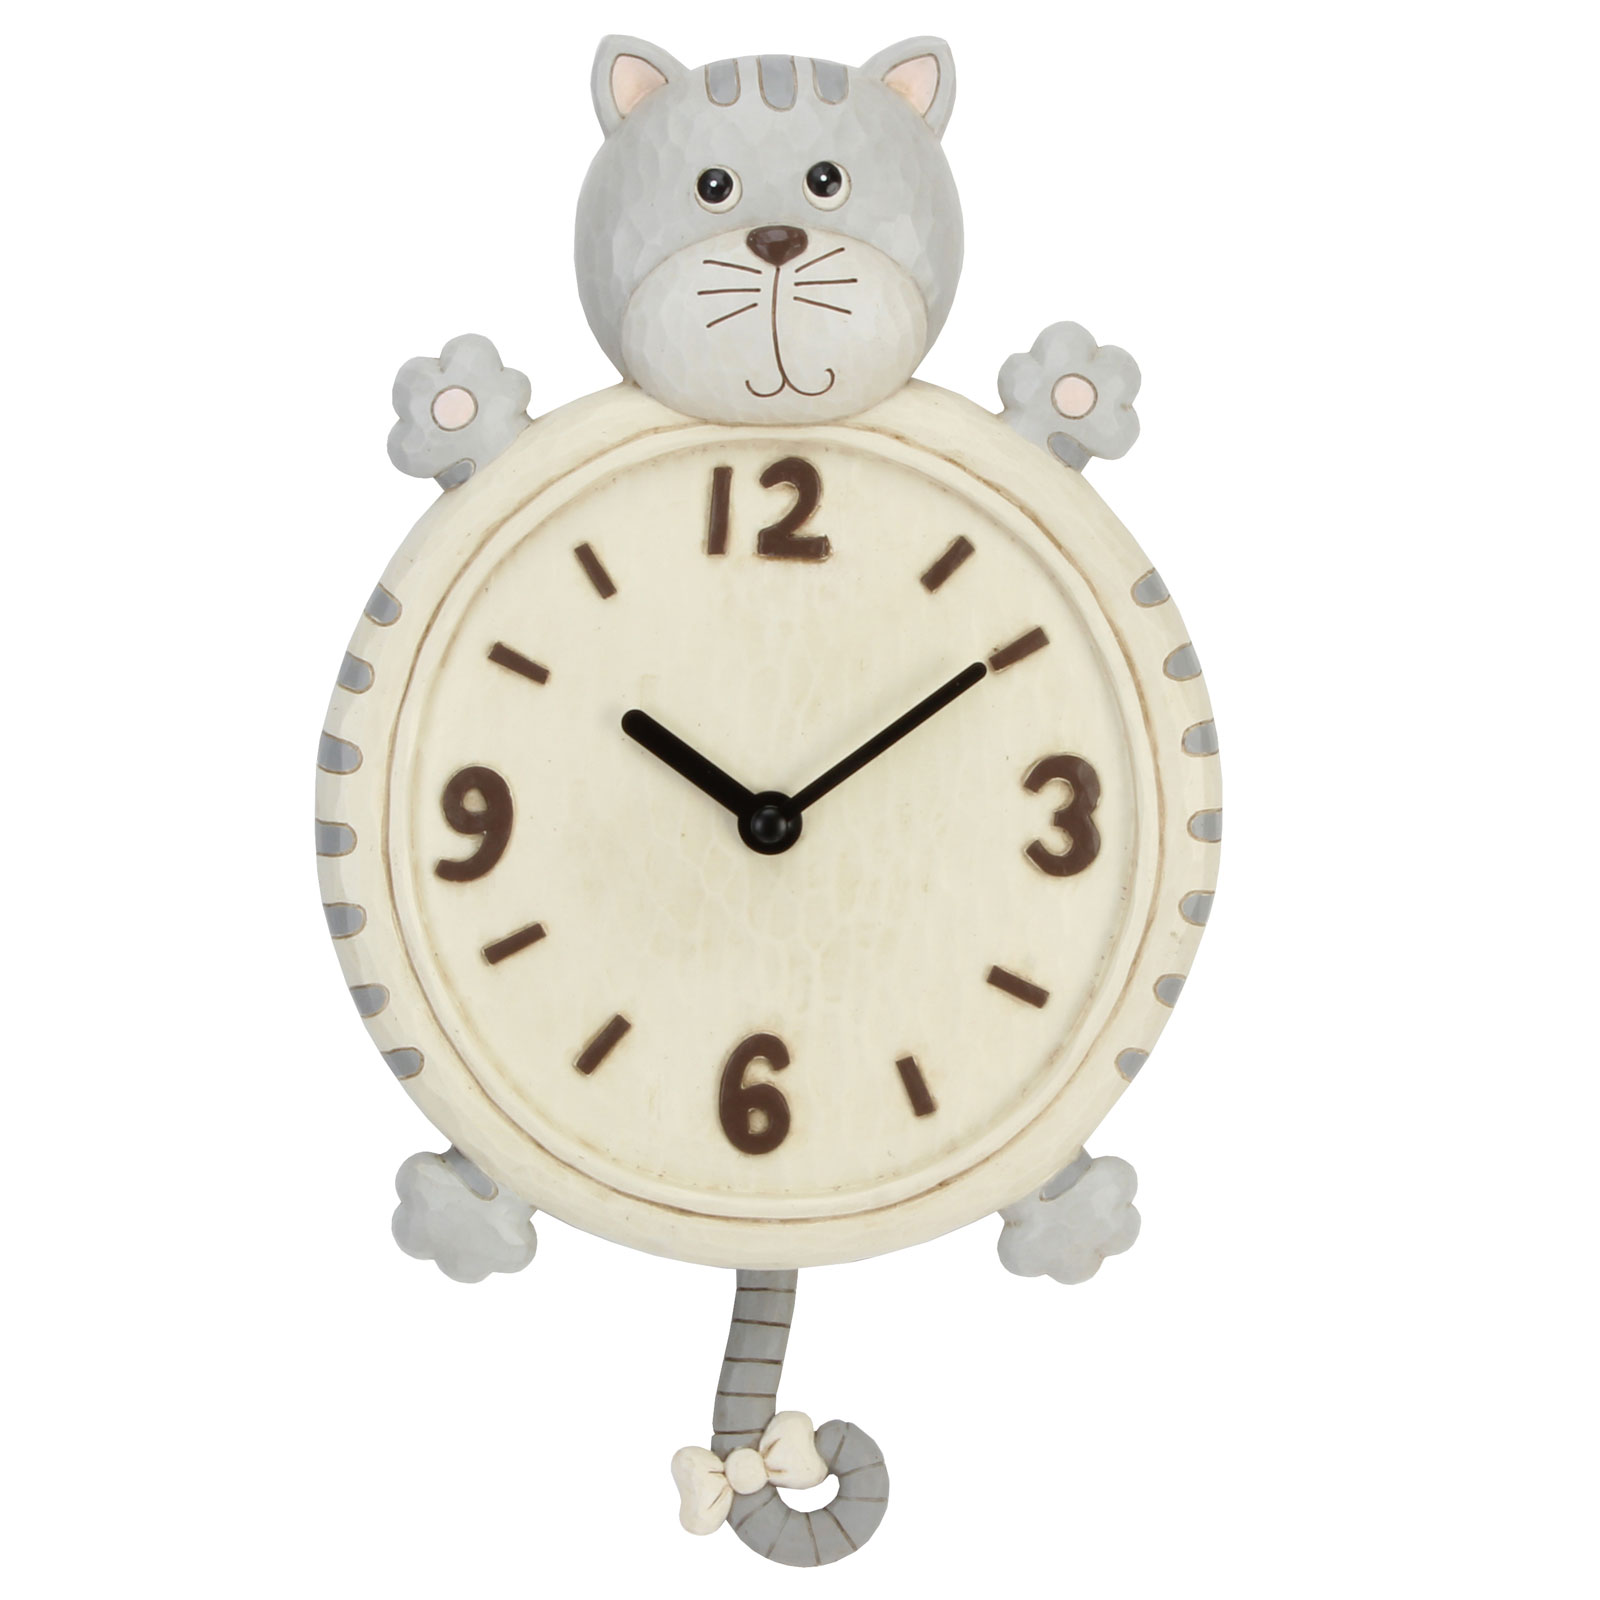 Animal style wall clocks hanging childrens bedroom clock with pendulum baby gift - Stylish pendulum wall clock ...